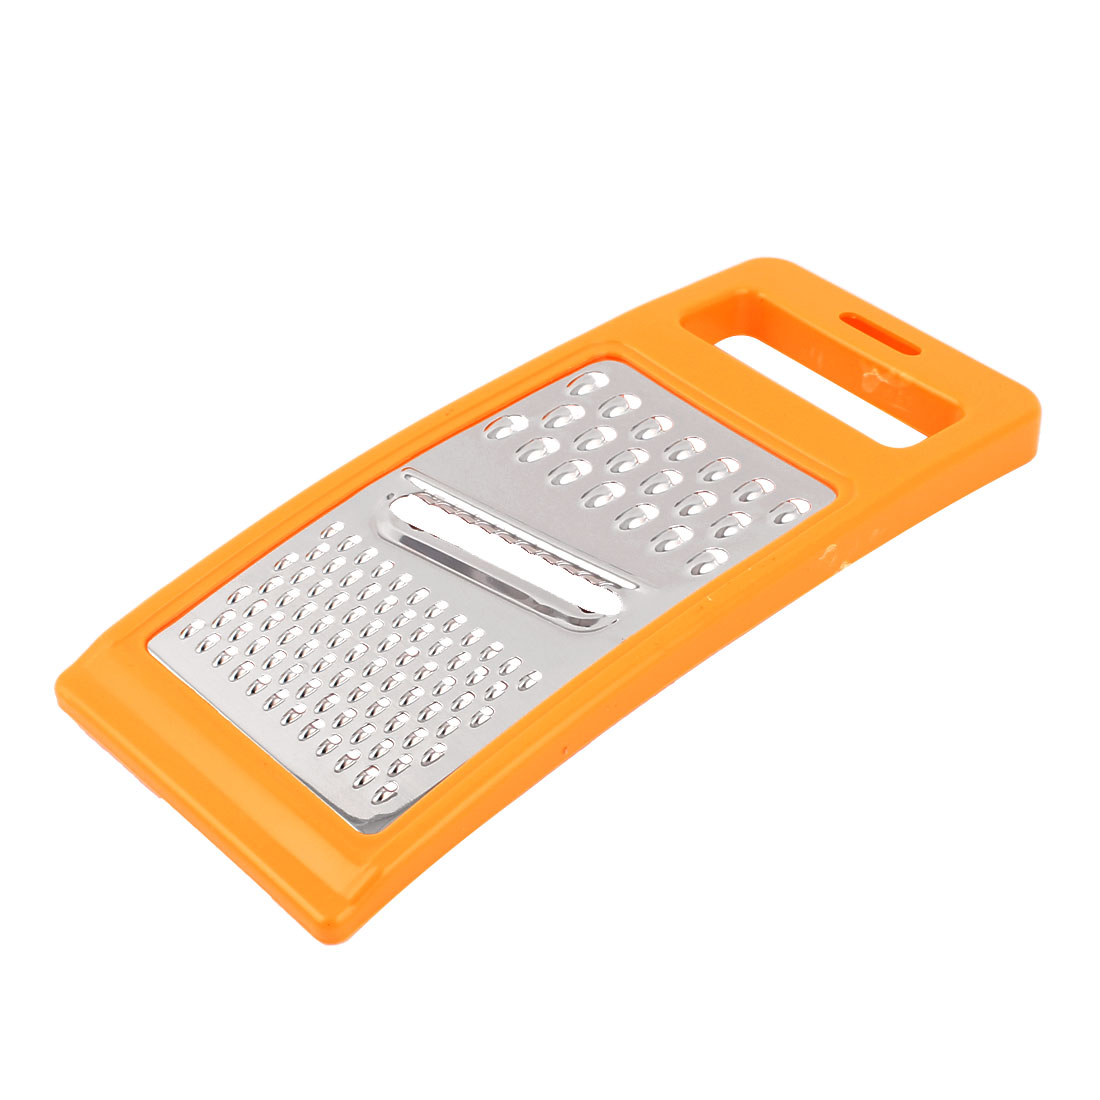 Multi-function Vegetable Grater Slice Cutter Peeler Kitchen Tool Orange